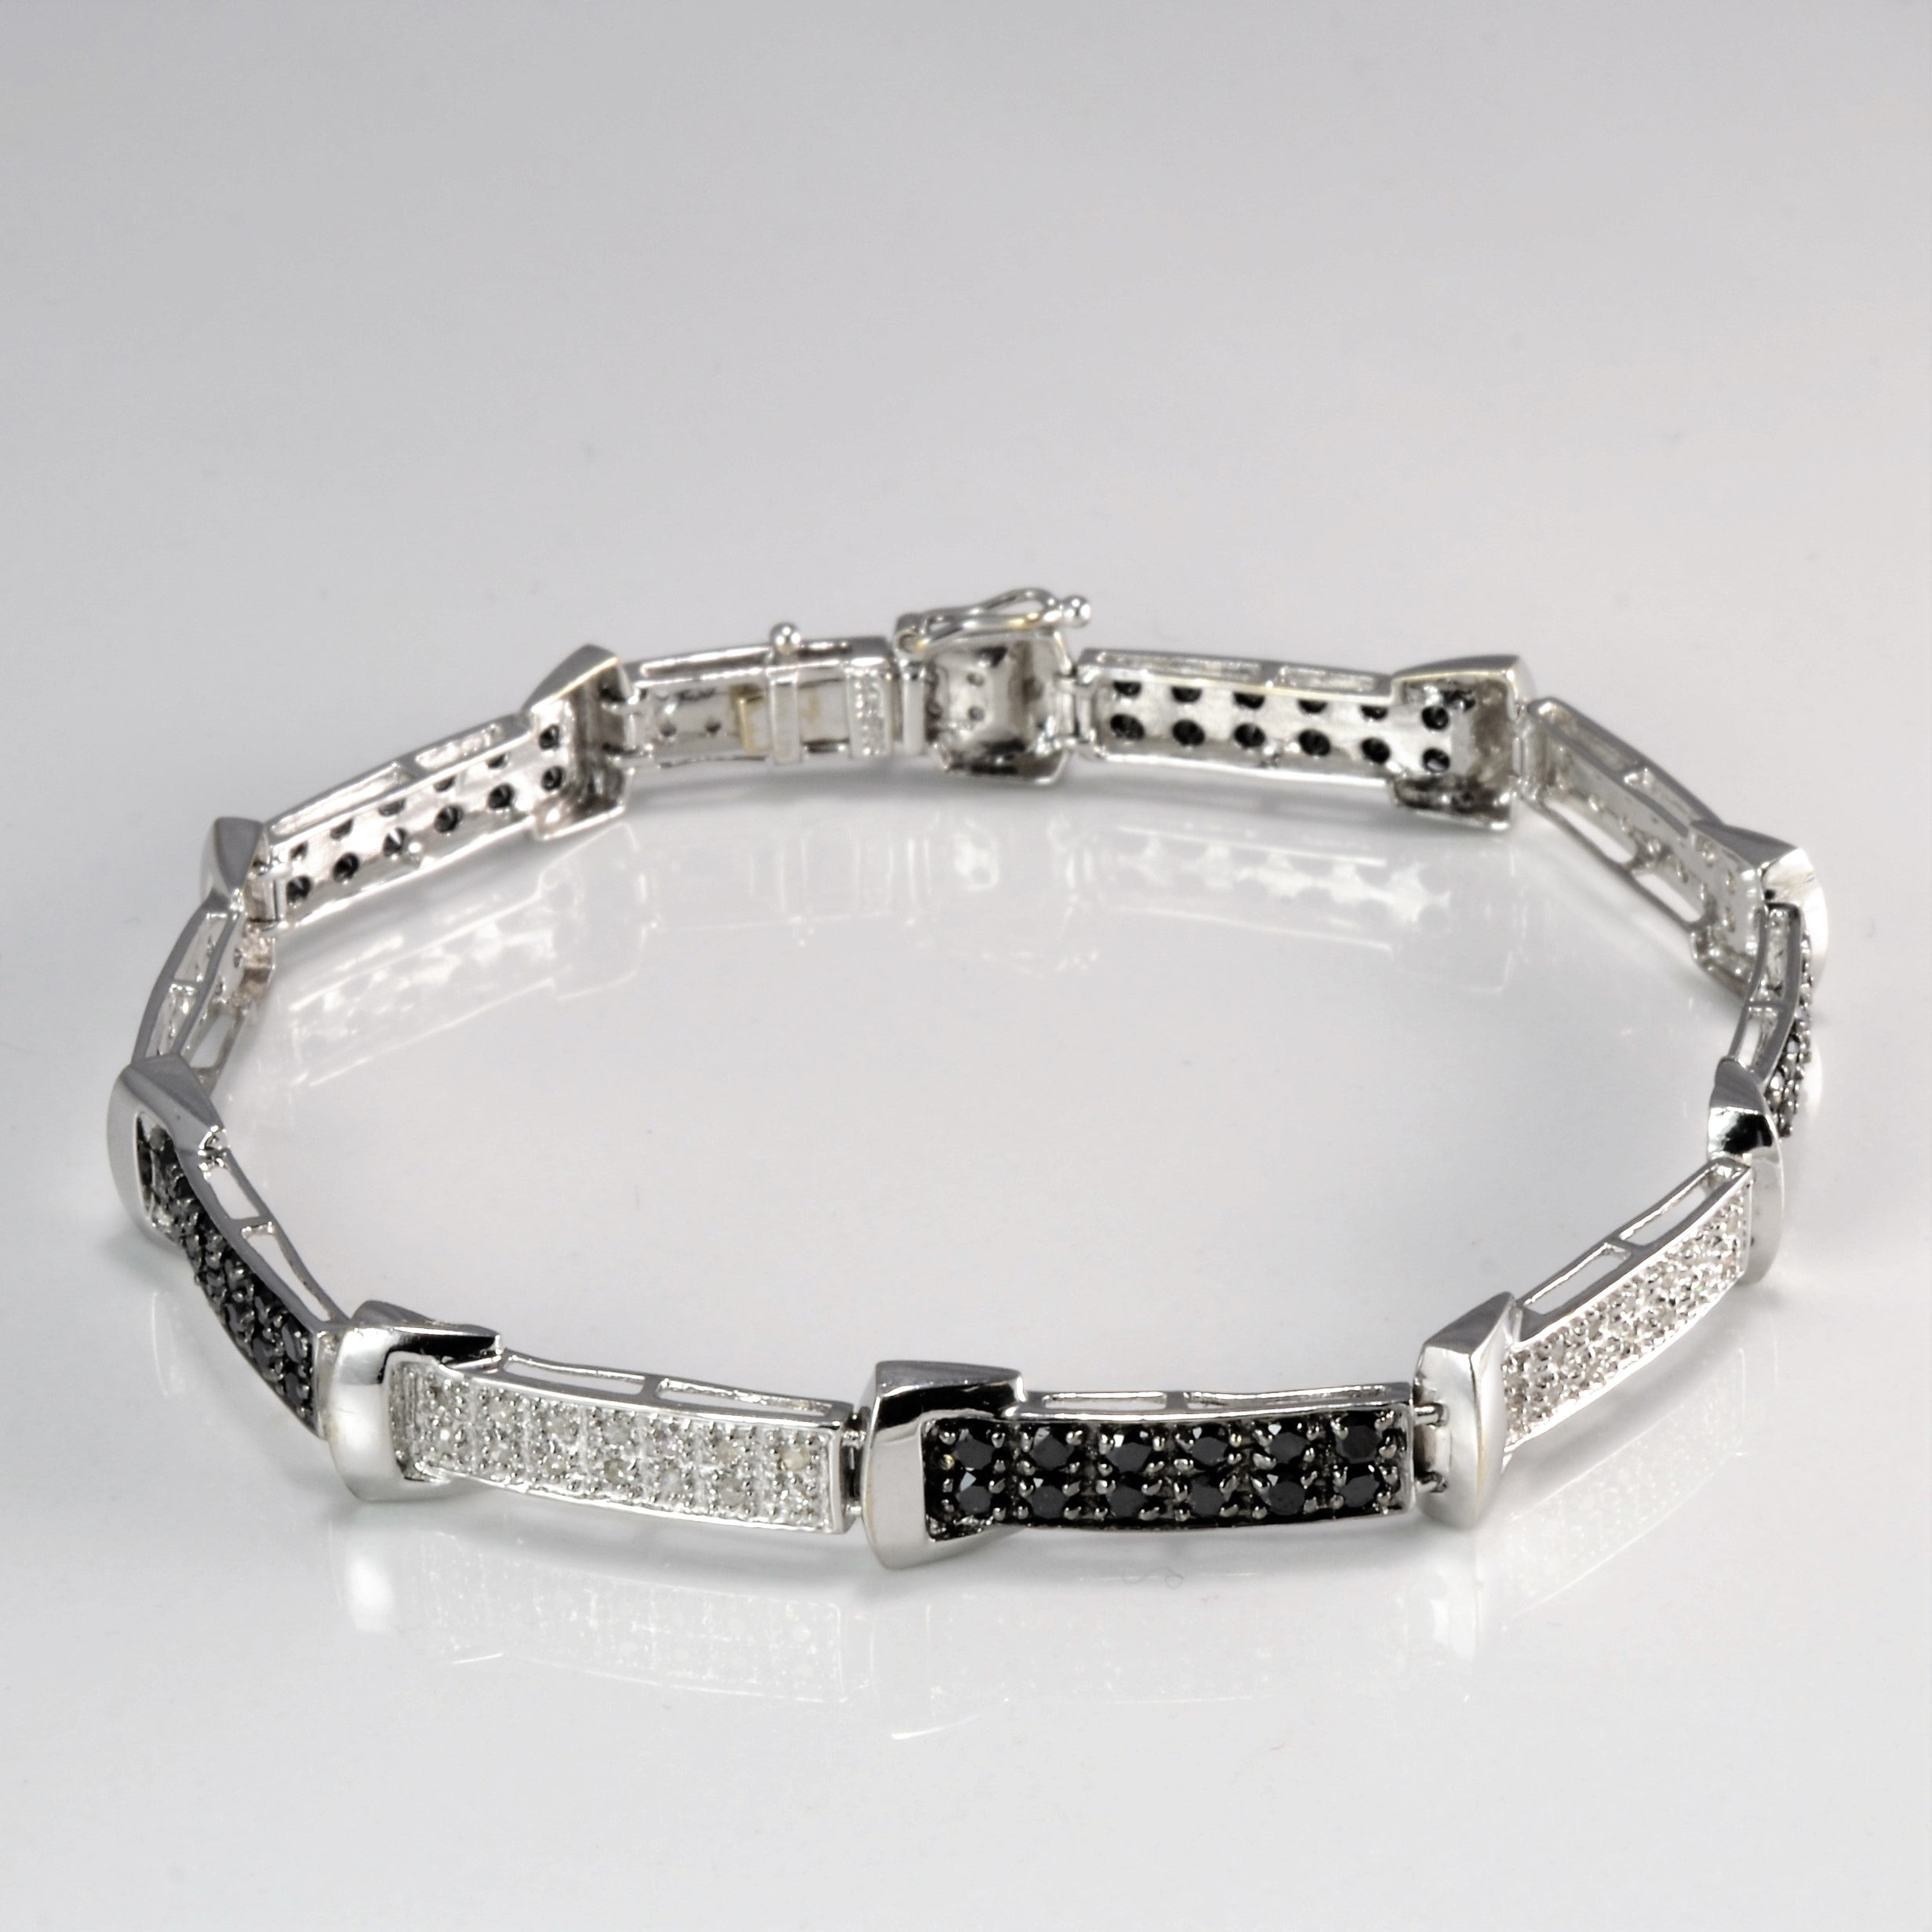 Black & White Diamond Bracelet | 1.00ctw | 7"